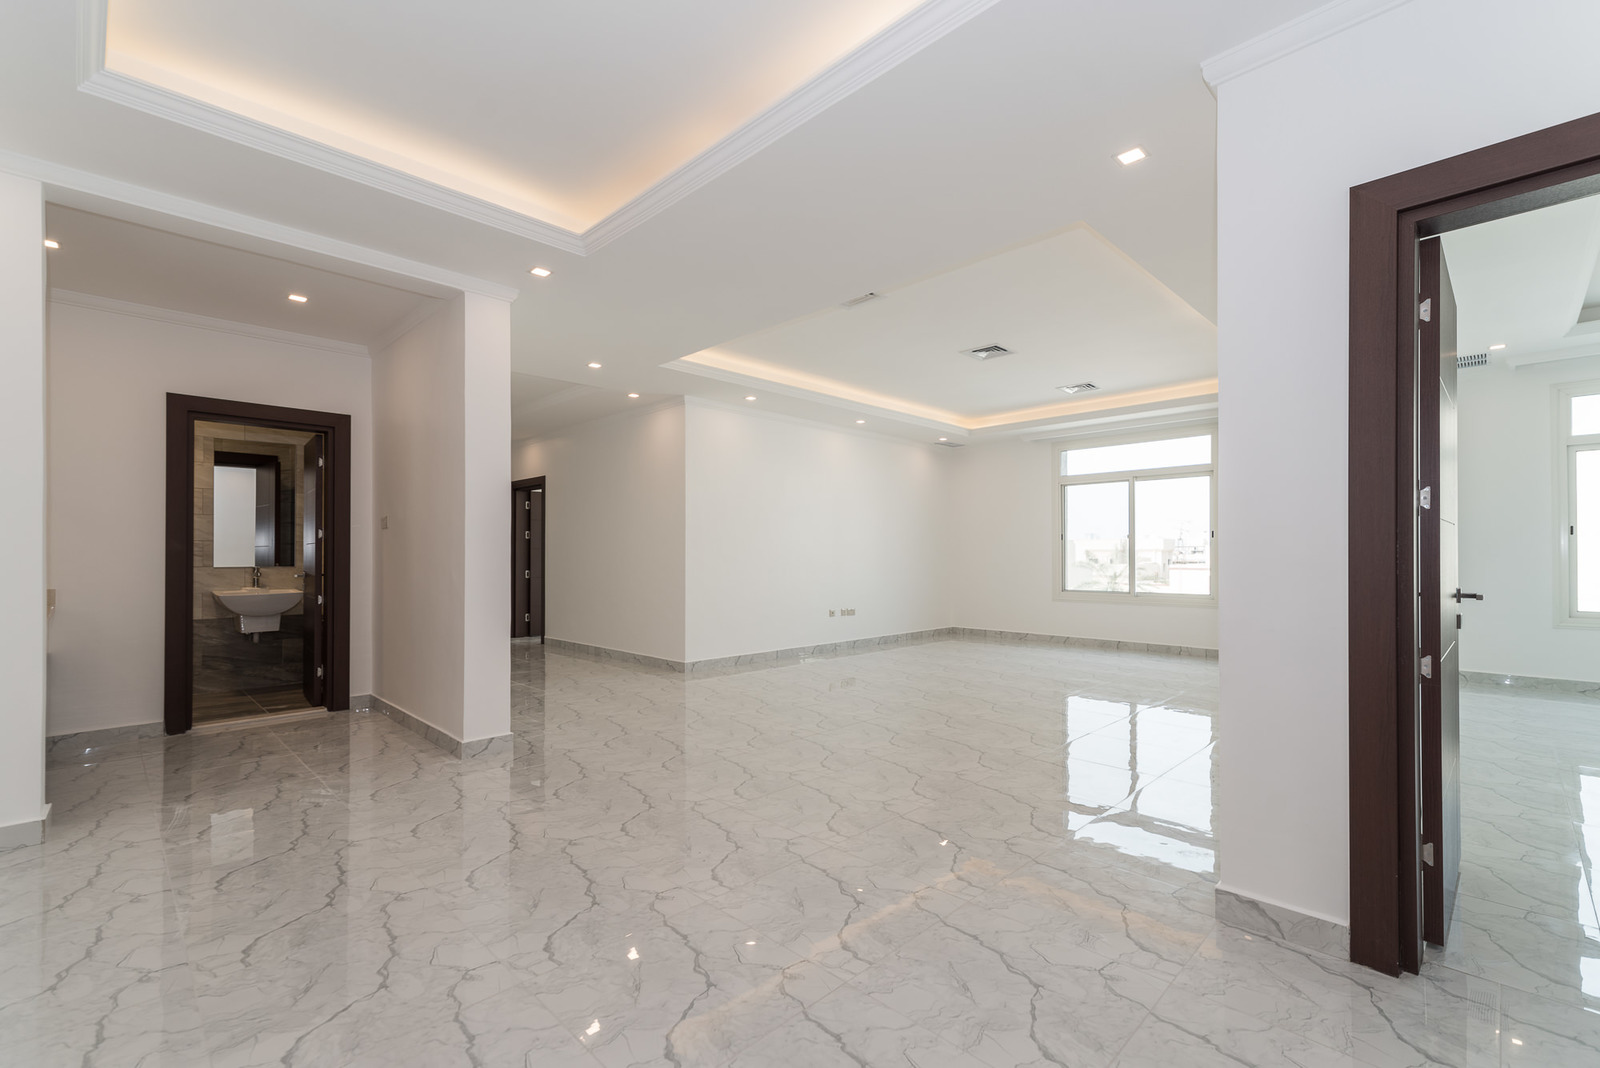 Rumaithiya – brand new, spacious, unfurnished four bedroom apartments